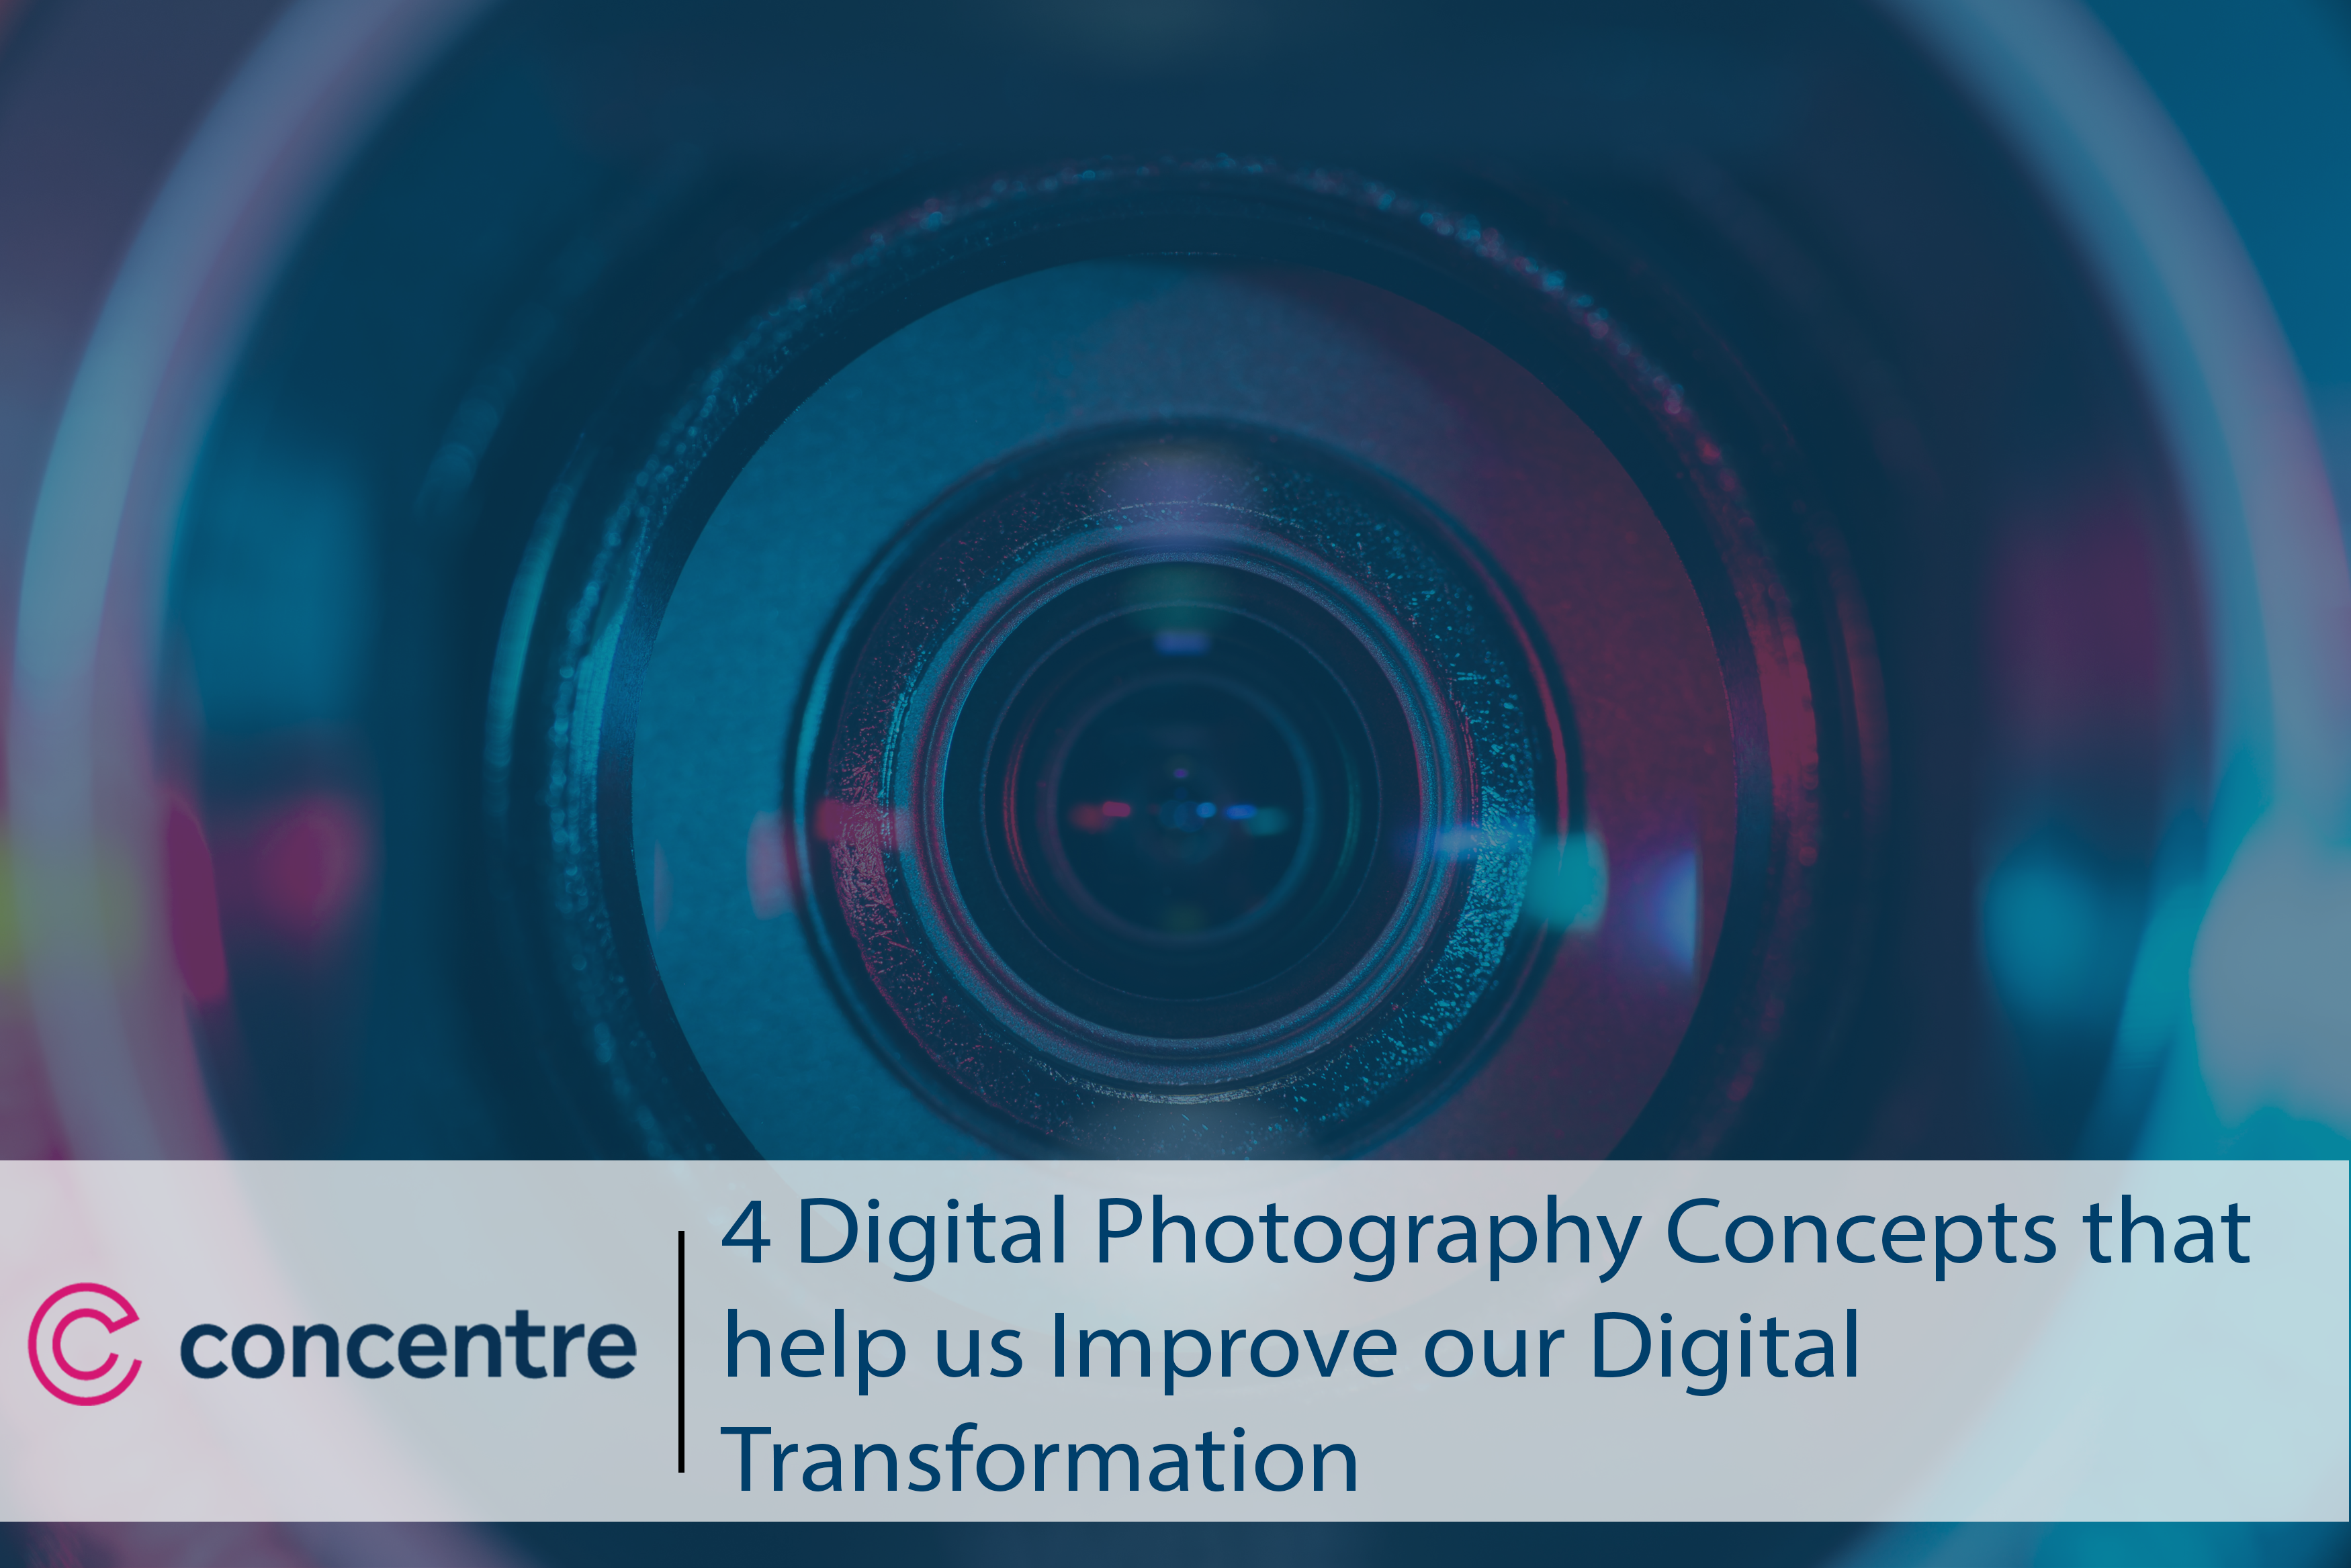 4 Digital Photography Concepts That Help Us Improve Our Digital Transformation